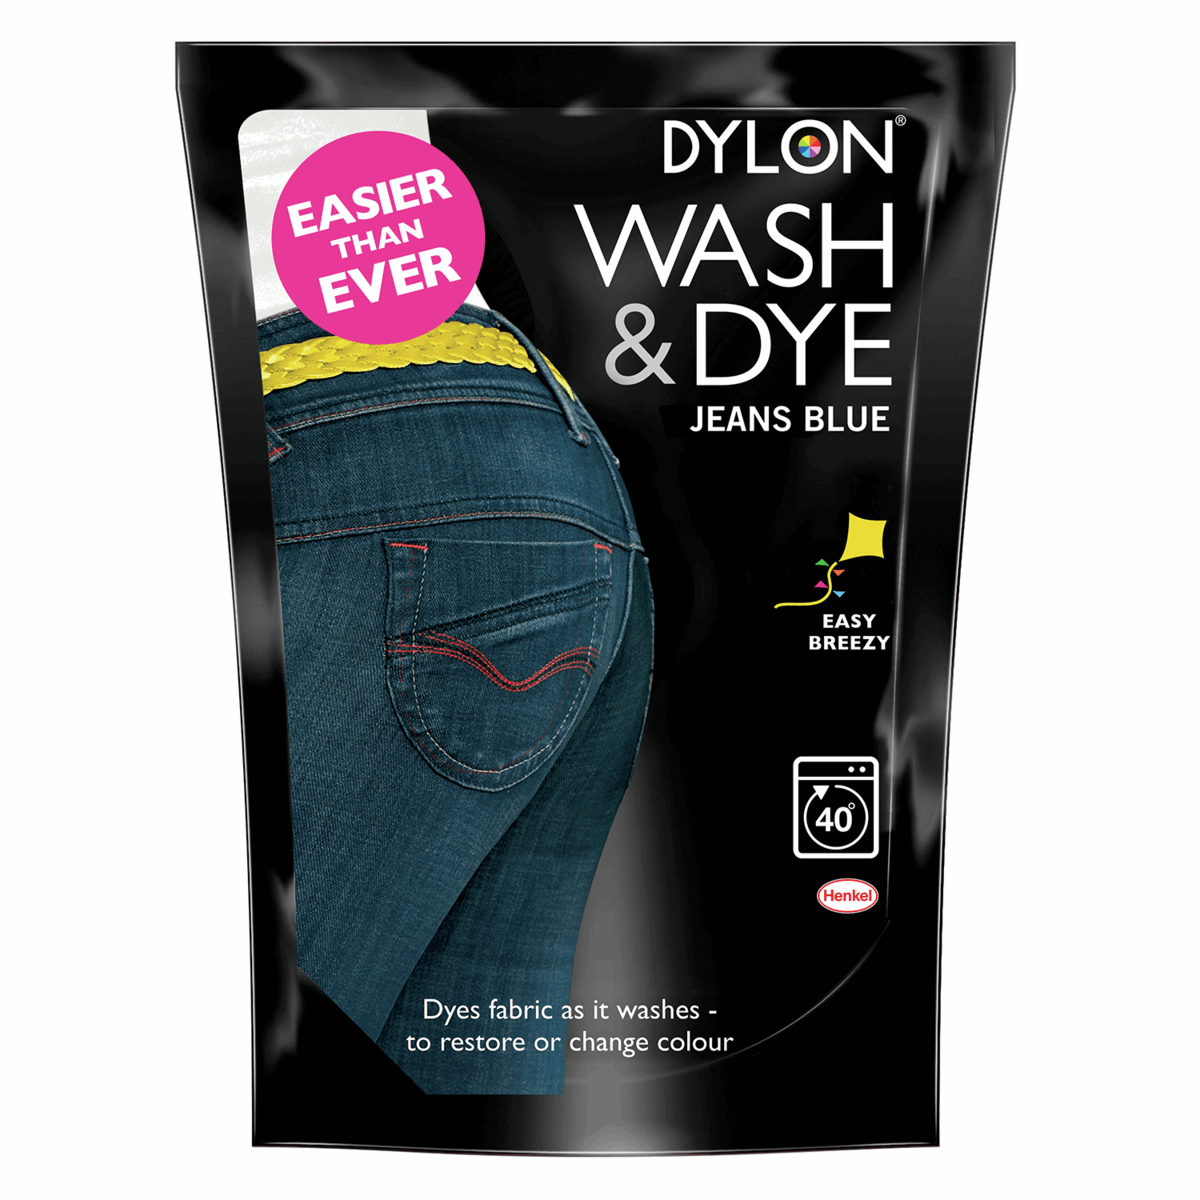 Dylon Wash & Dye Fabric Powder Reviving Faded Colours 350g Black